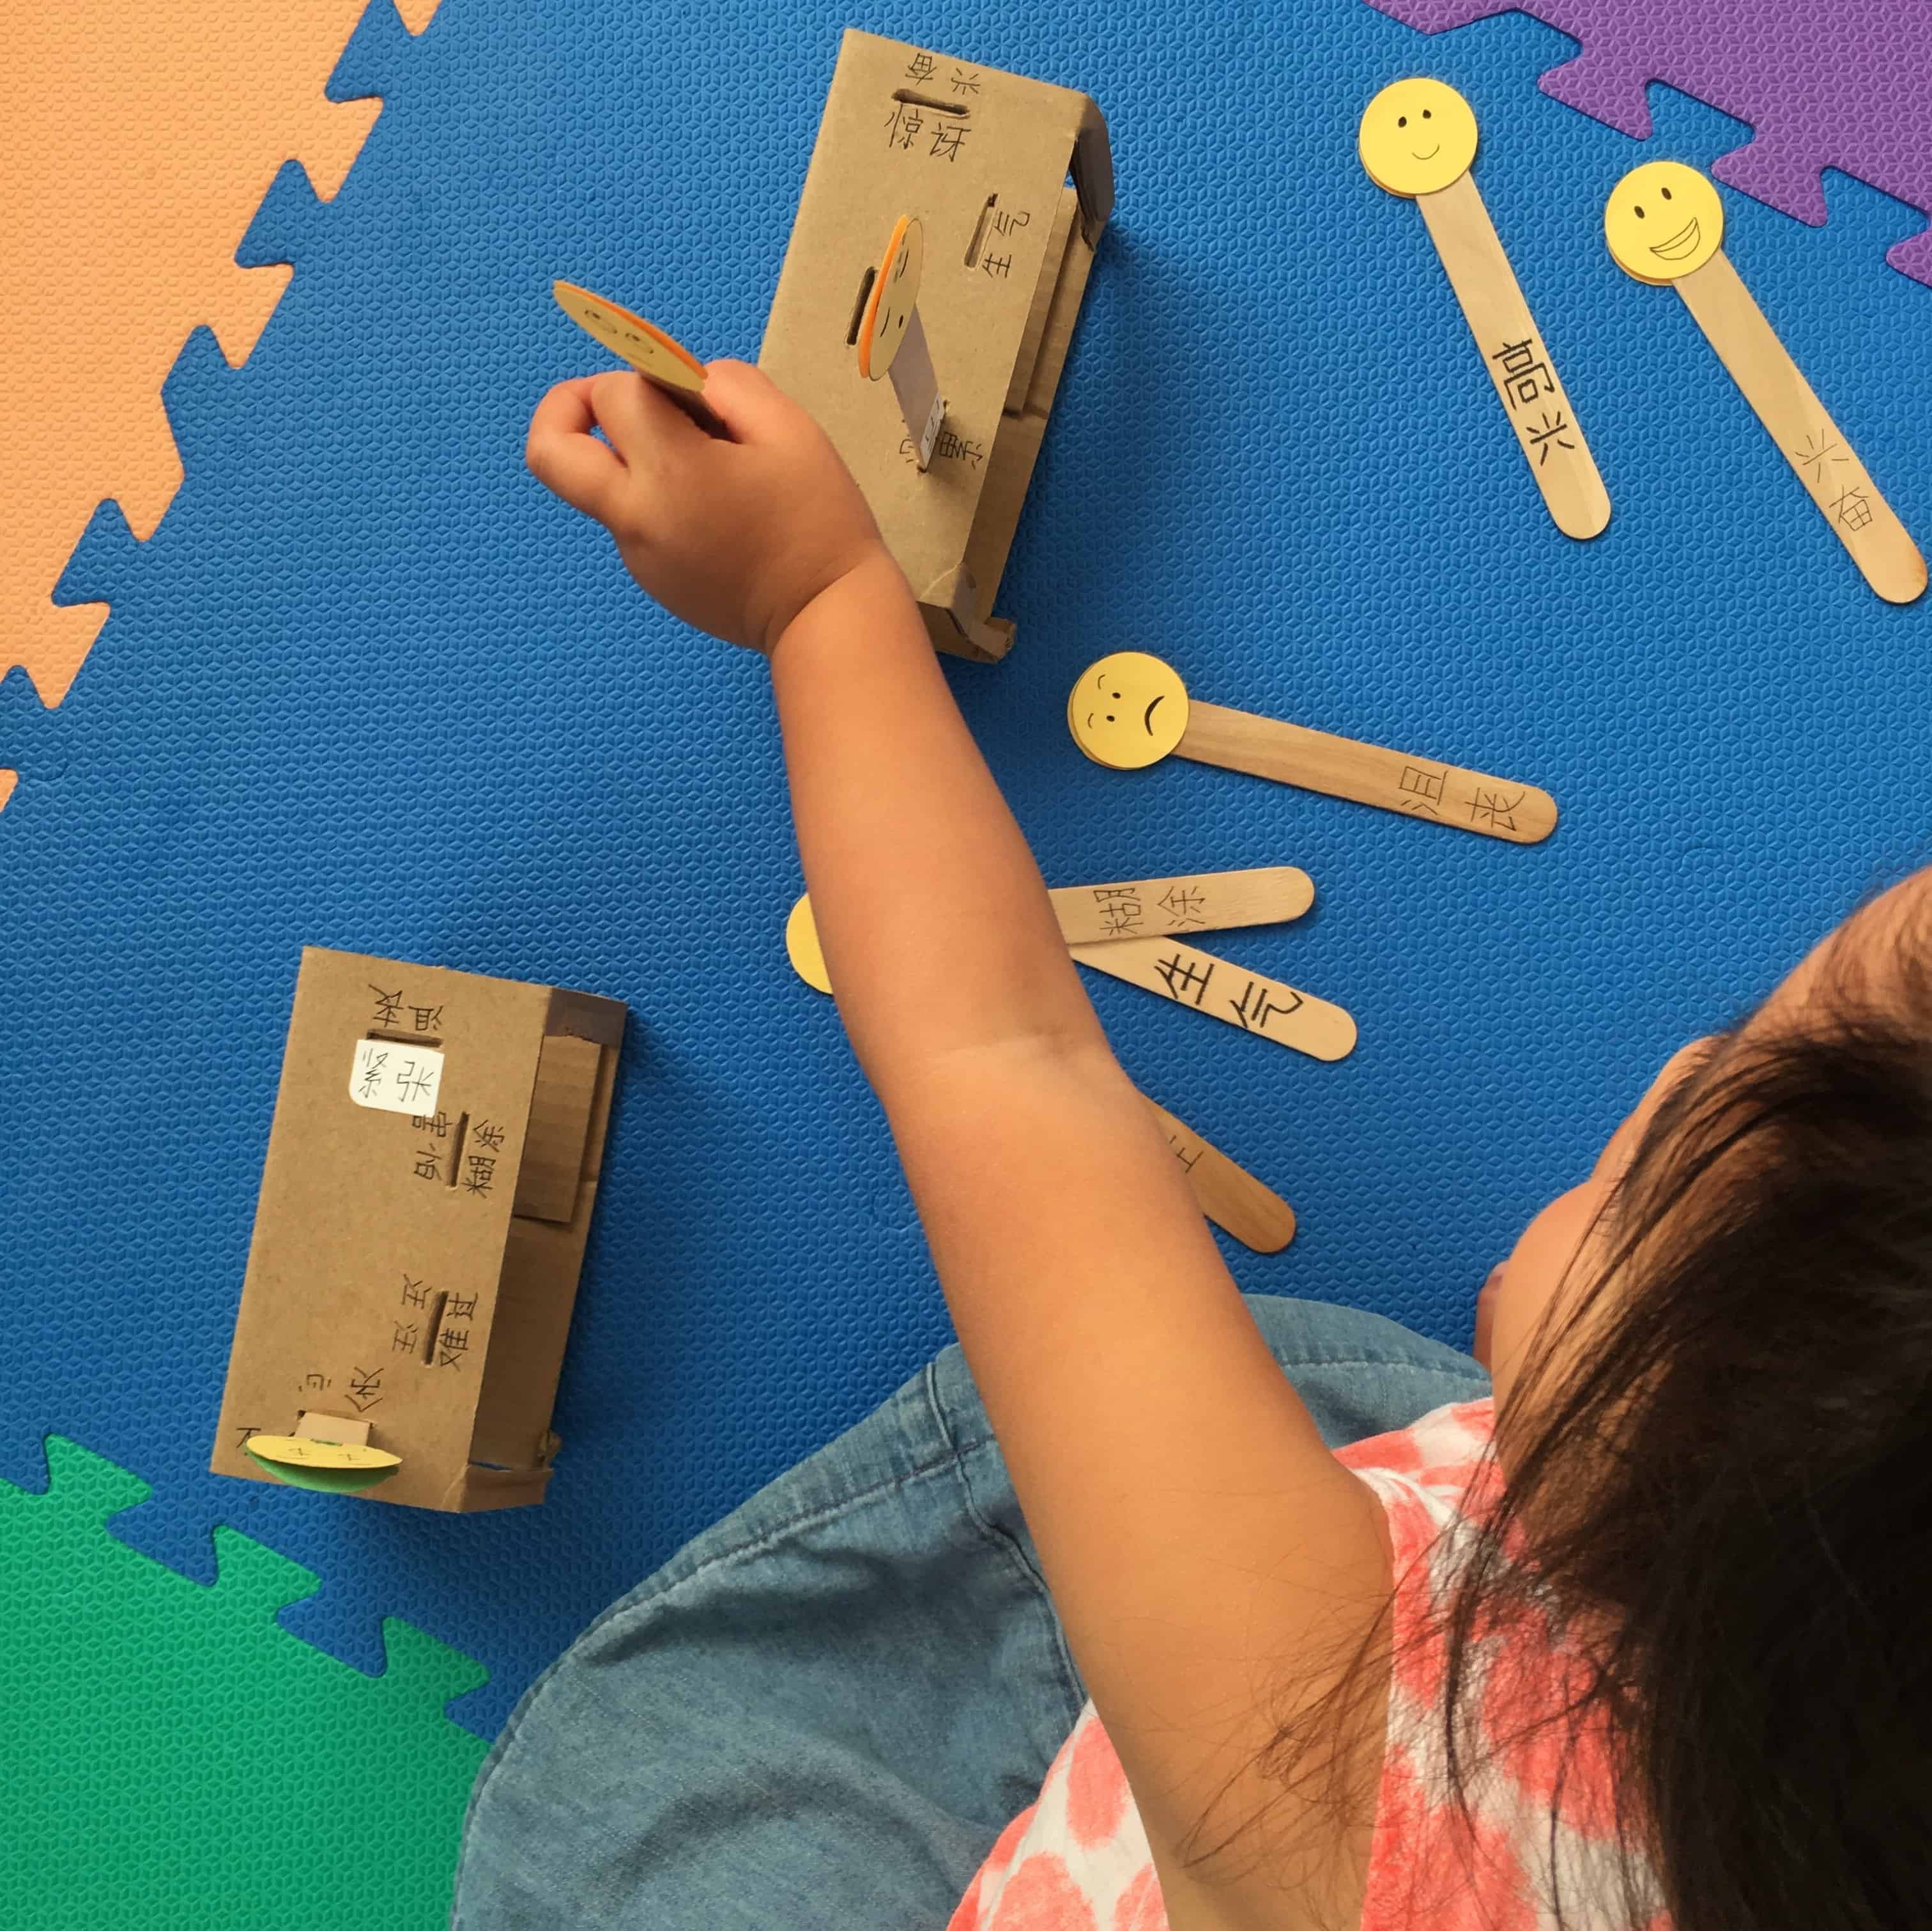 Emoji Matching Activity with Craft Sticks and Cardboard Slots